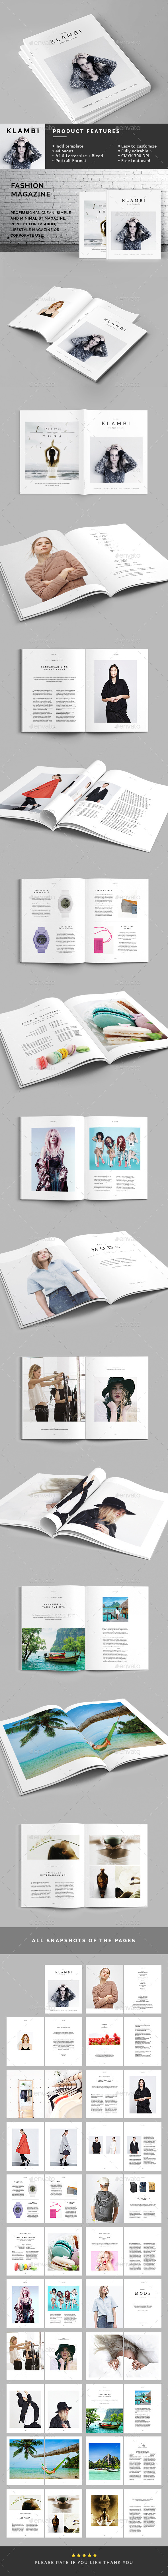 GraphicRiver Fashion Magazine Template 11623690